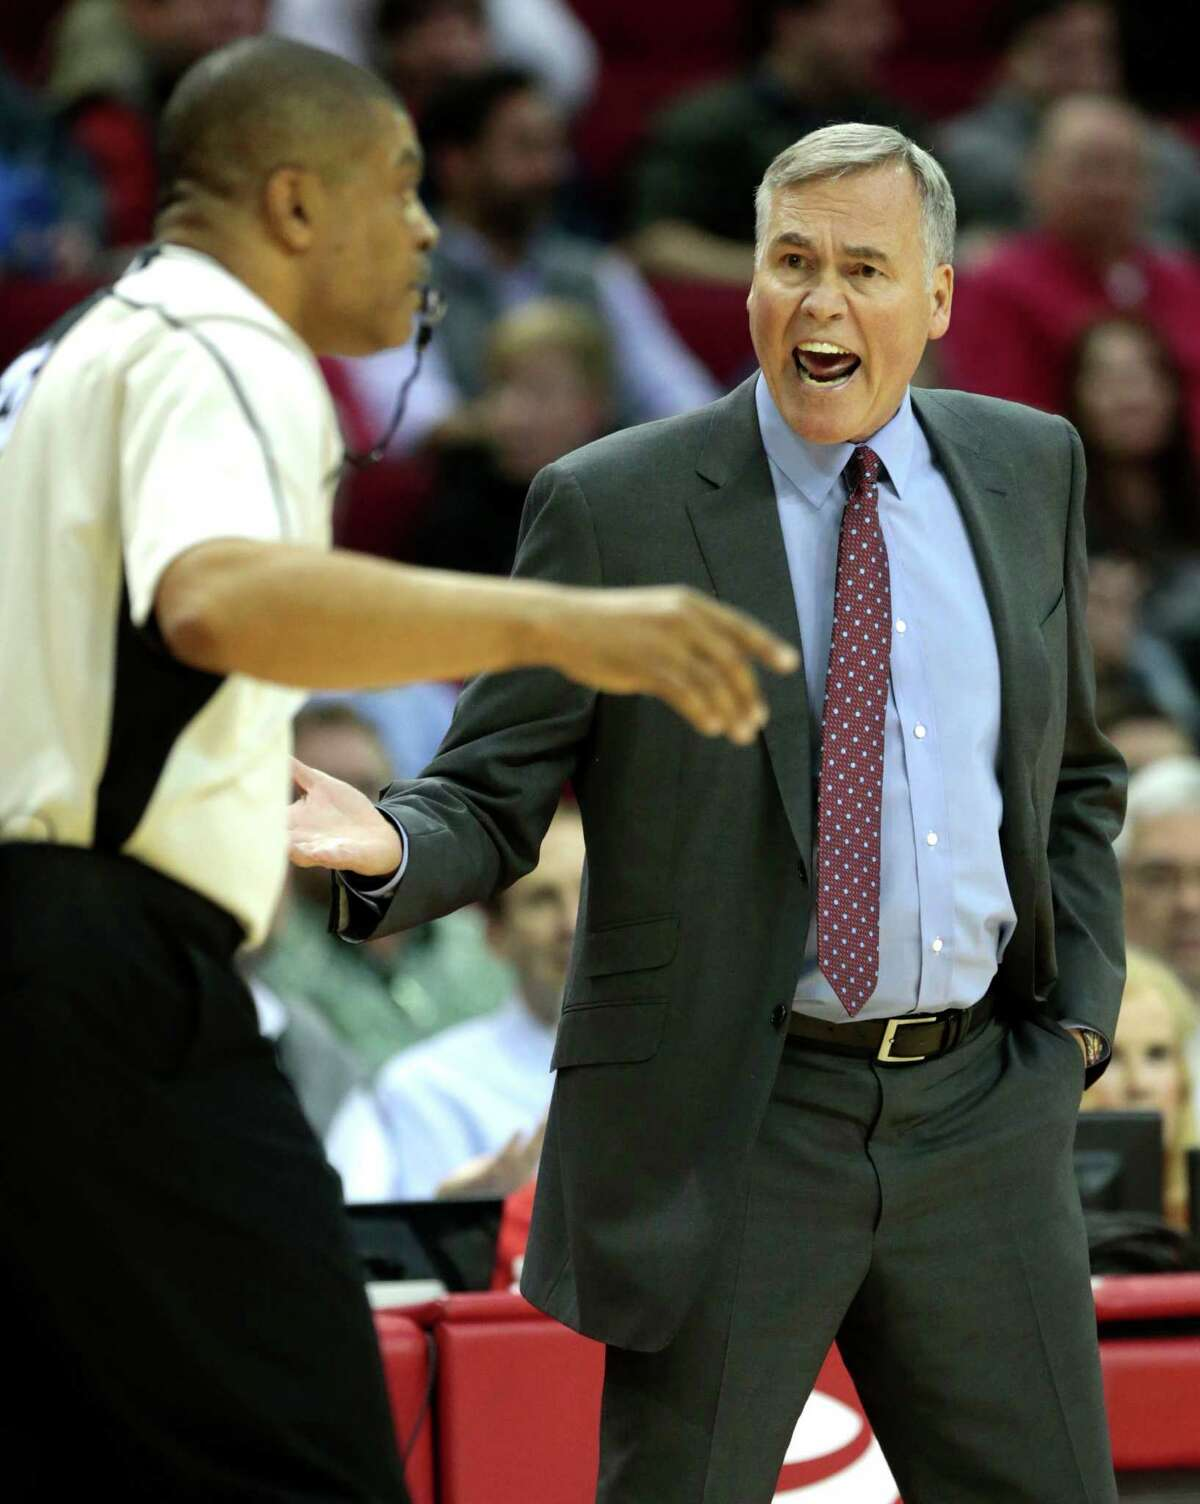 Houston Rockets head coach Mike D'Antoni argues a call during the second quarter of an NBA basketball game against the San Antonio Spurs at Toyota Center on Tuesday, Dec. 20, 2016, in Houston.